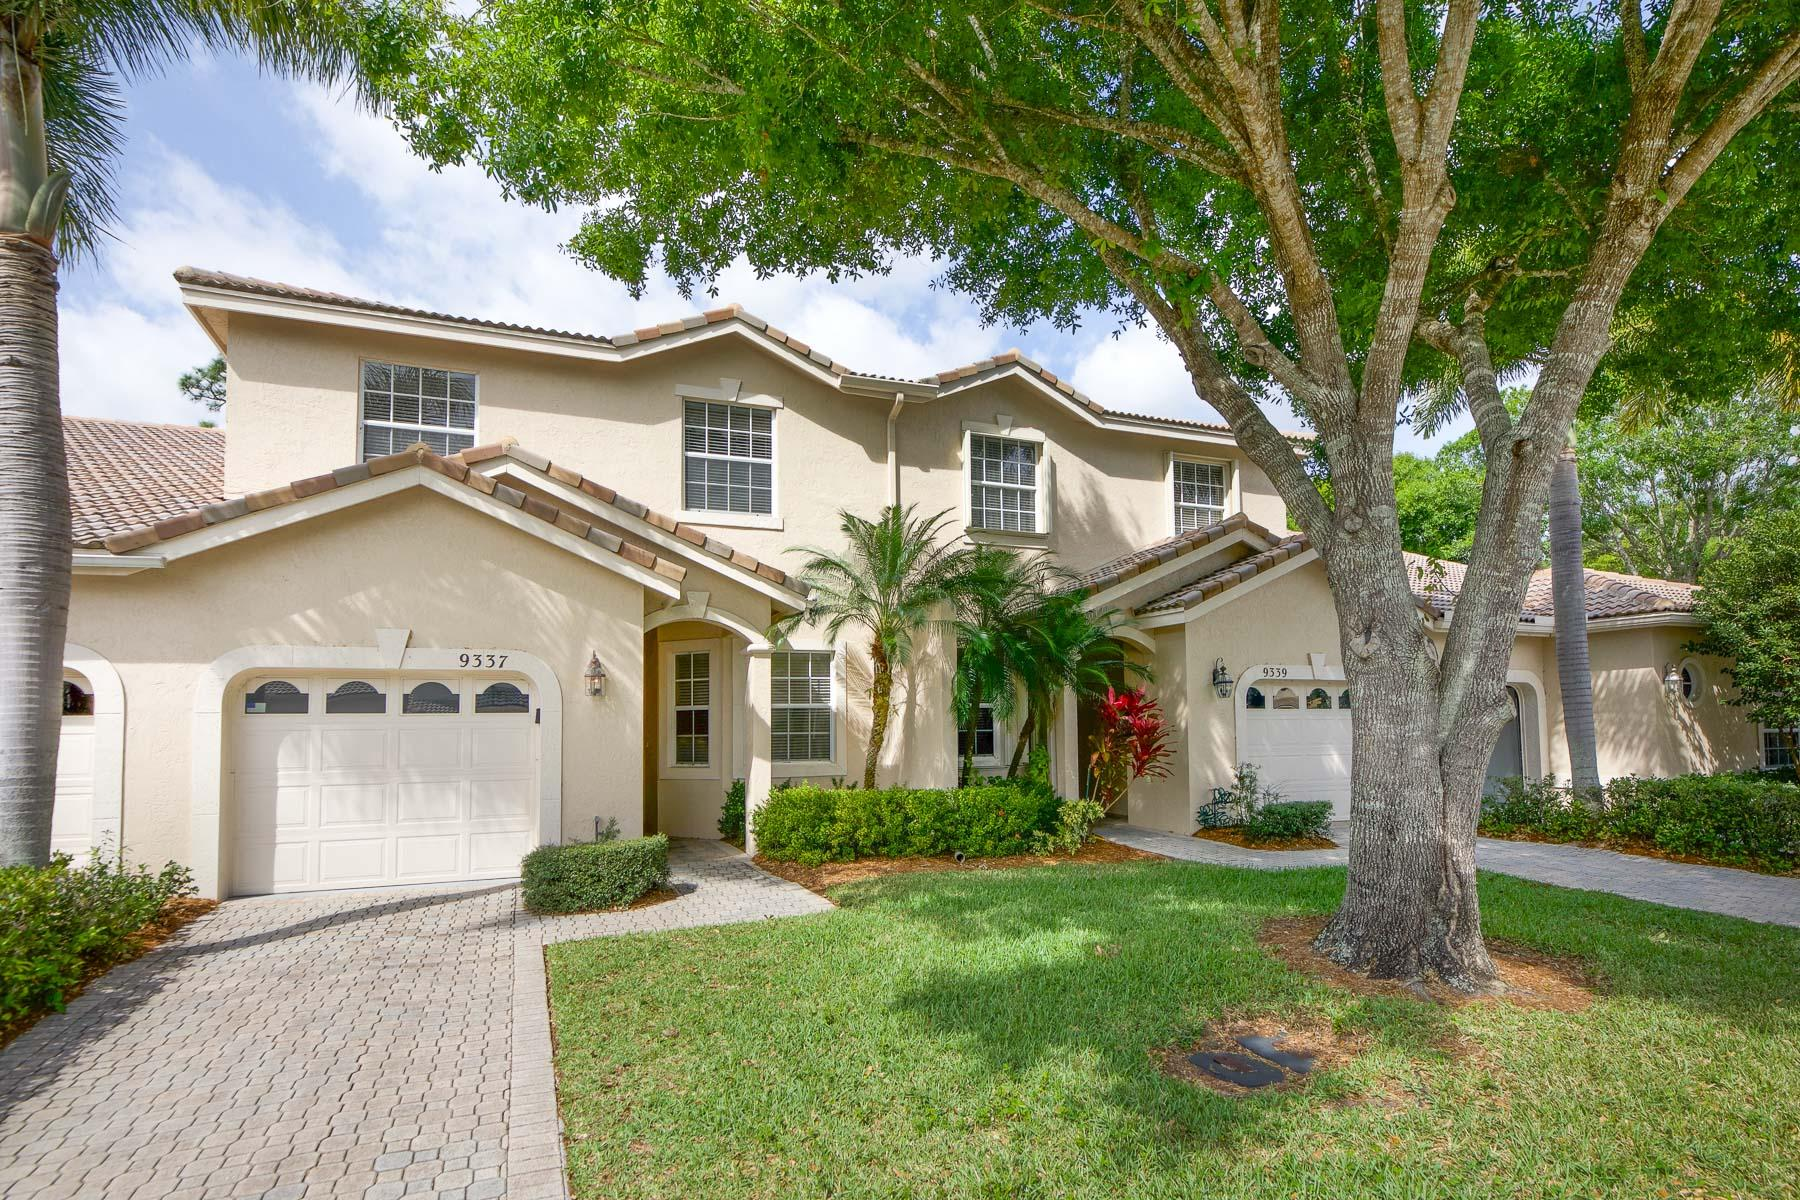 9337 World Cup Way, Port Saint Lucie, FL 34986